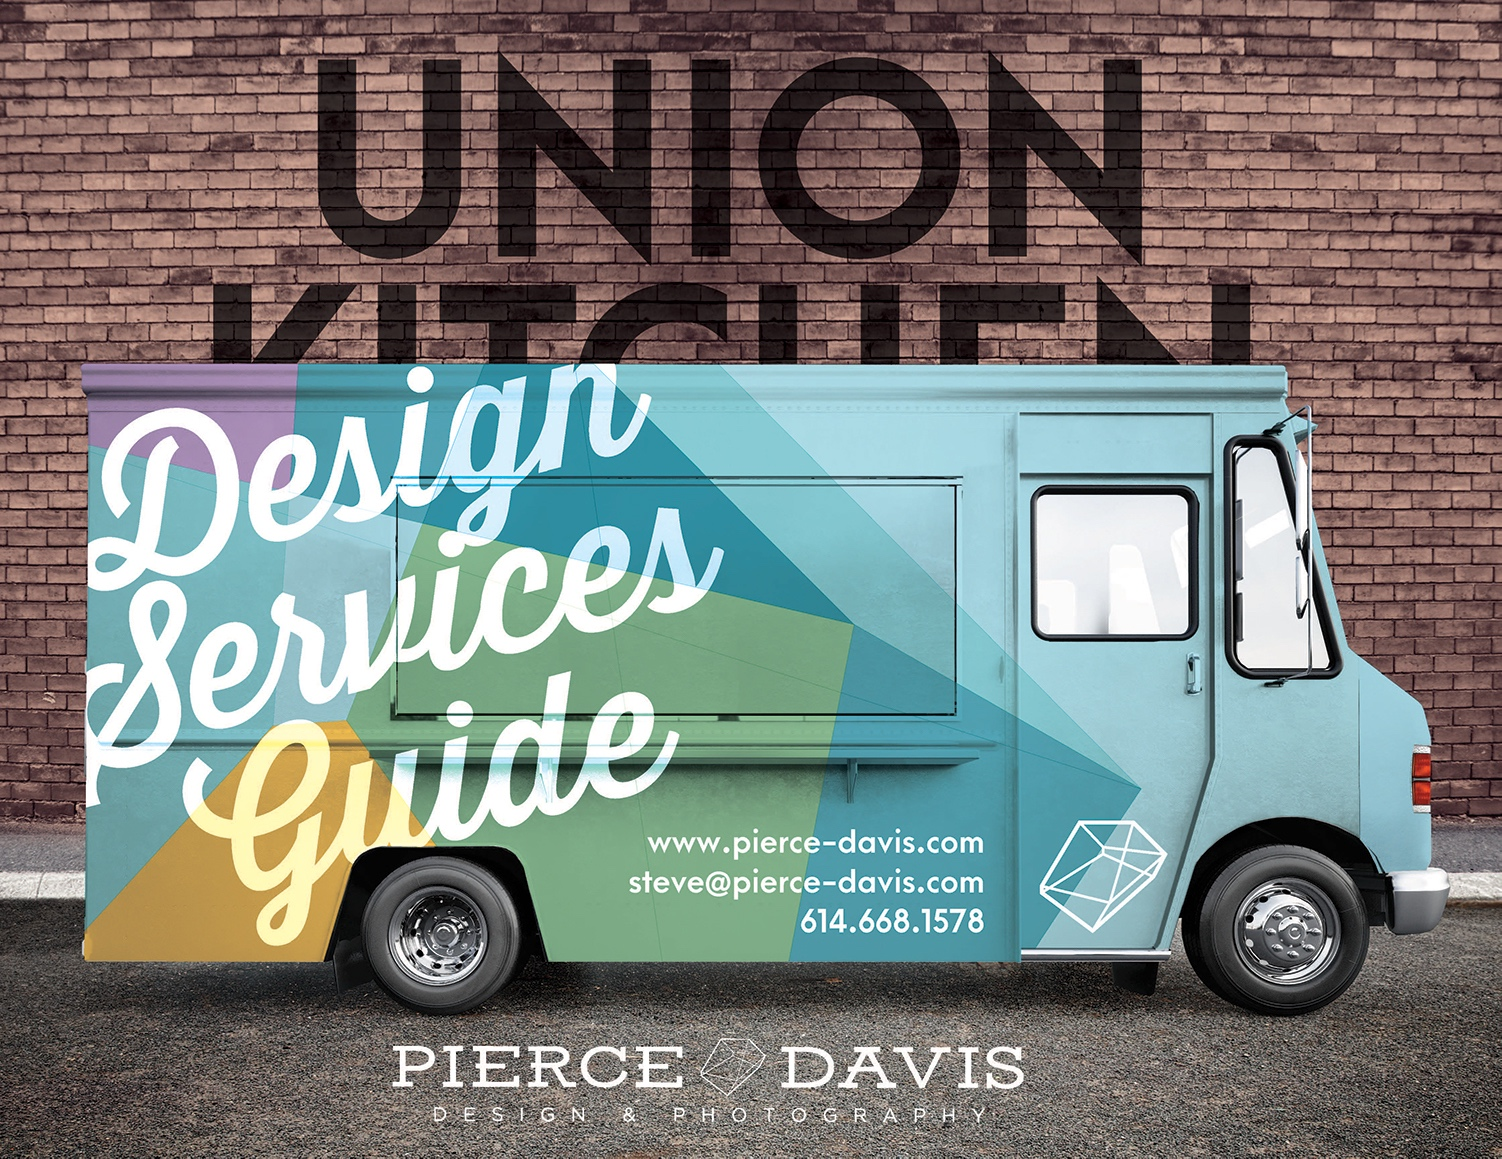 Pierce-Davis_Design Services Guide_Union KitchenDC_6_Page_1.jpg